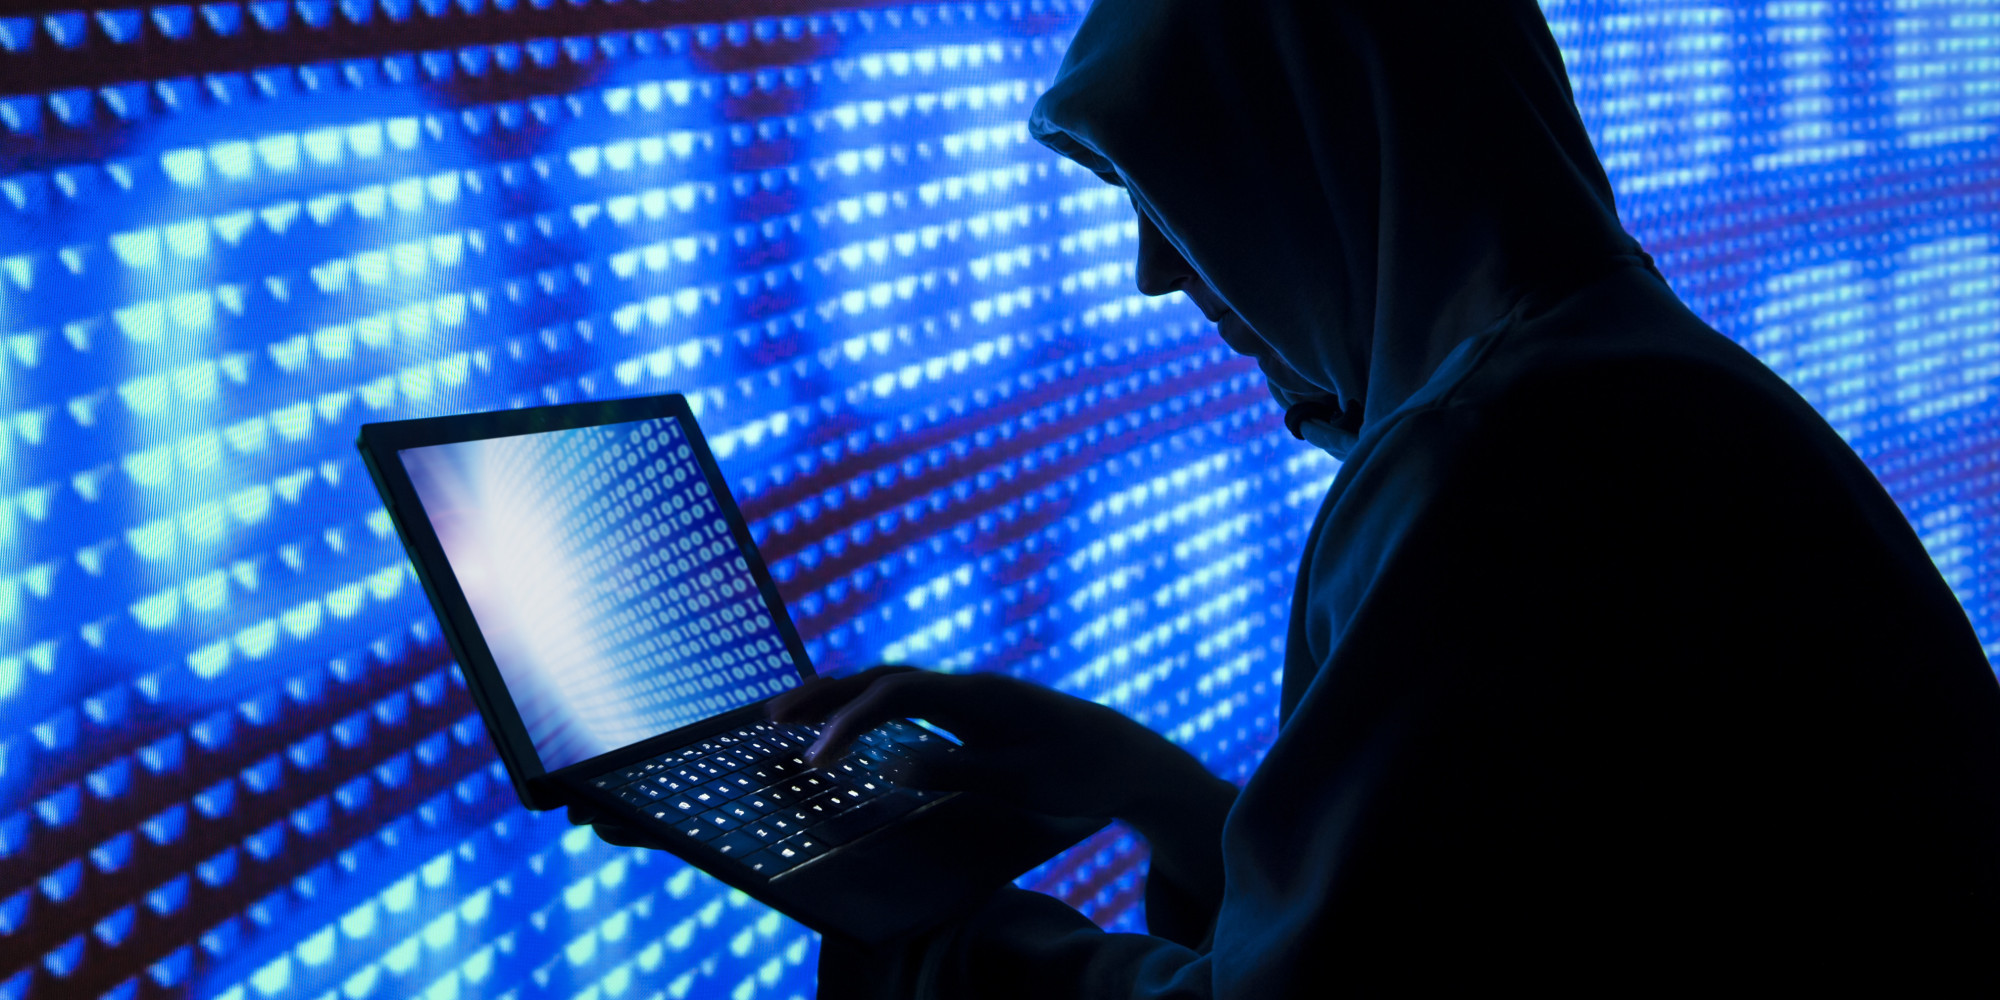 More Than Half of Australian Small Businesses at Risk of Cyber Attack